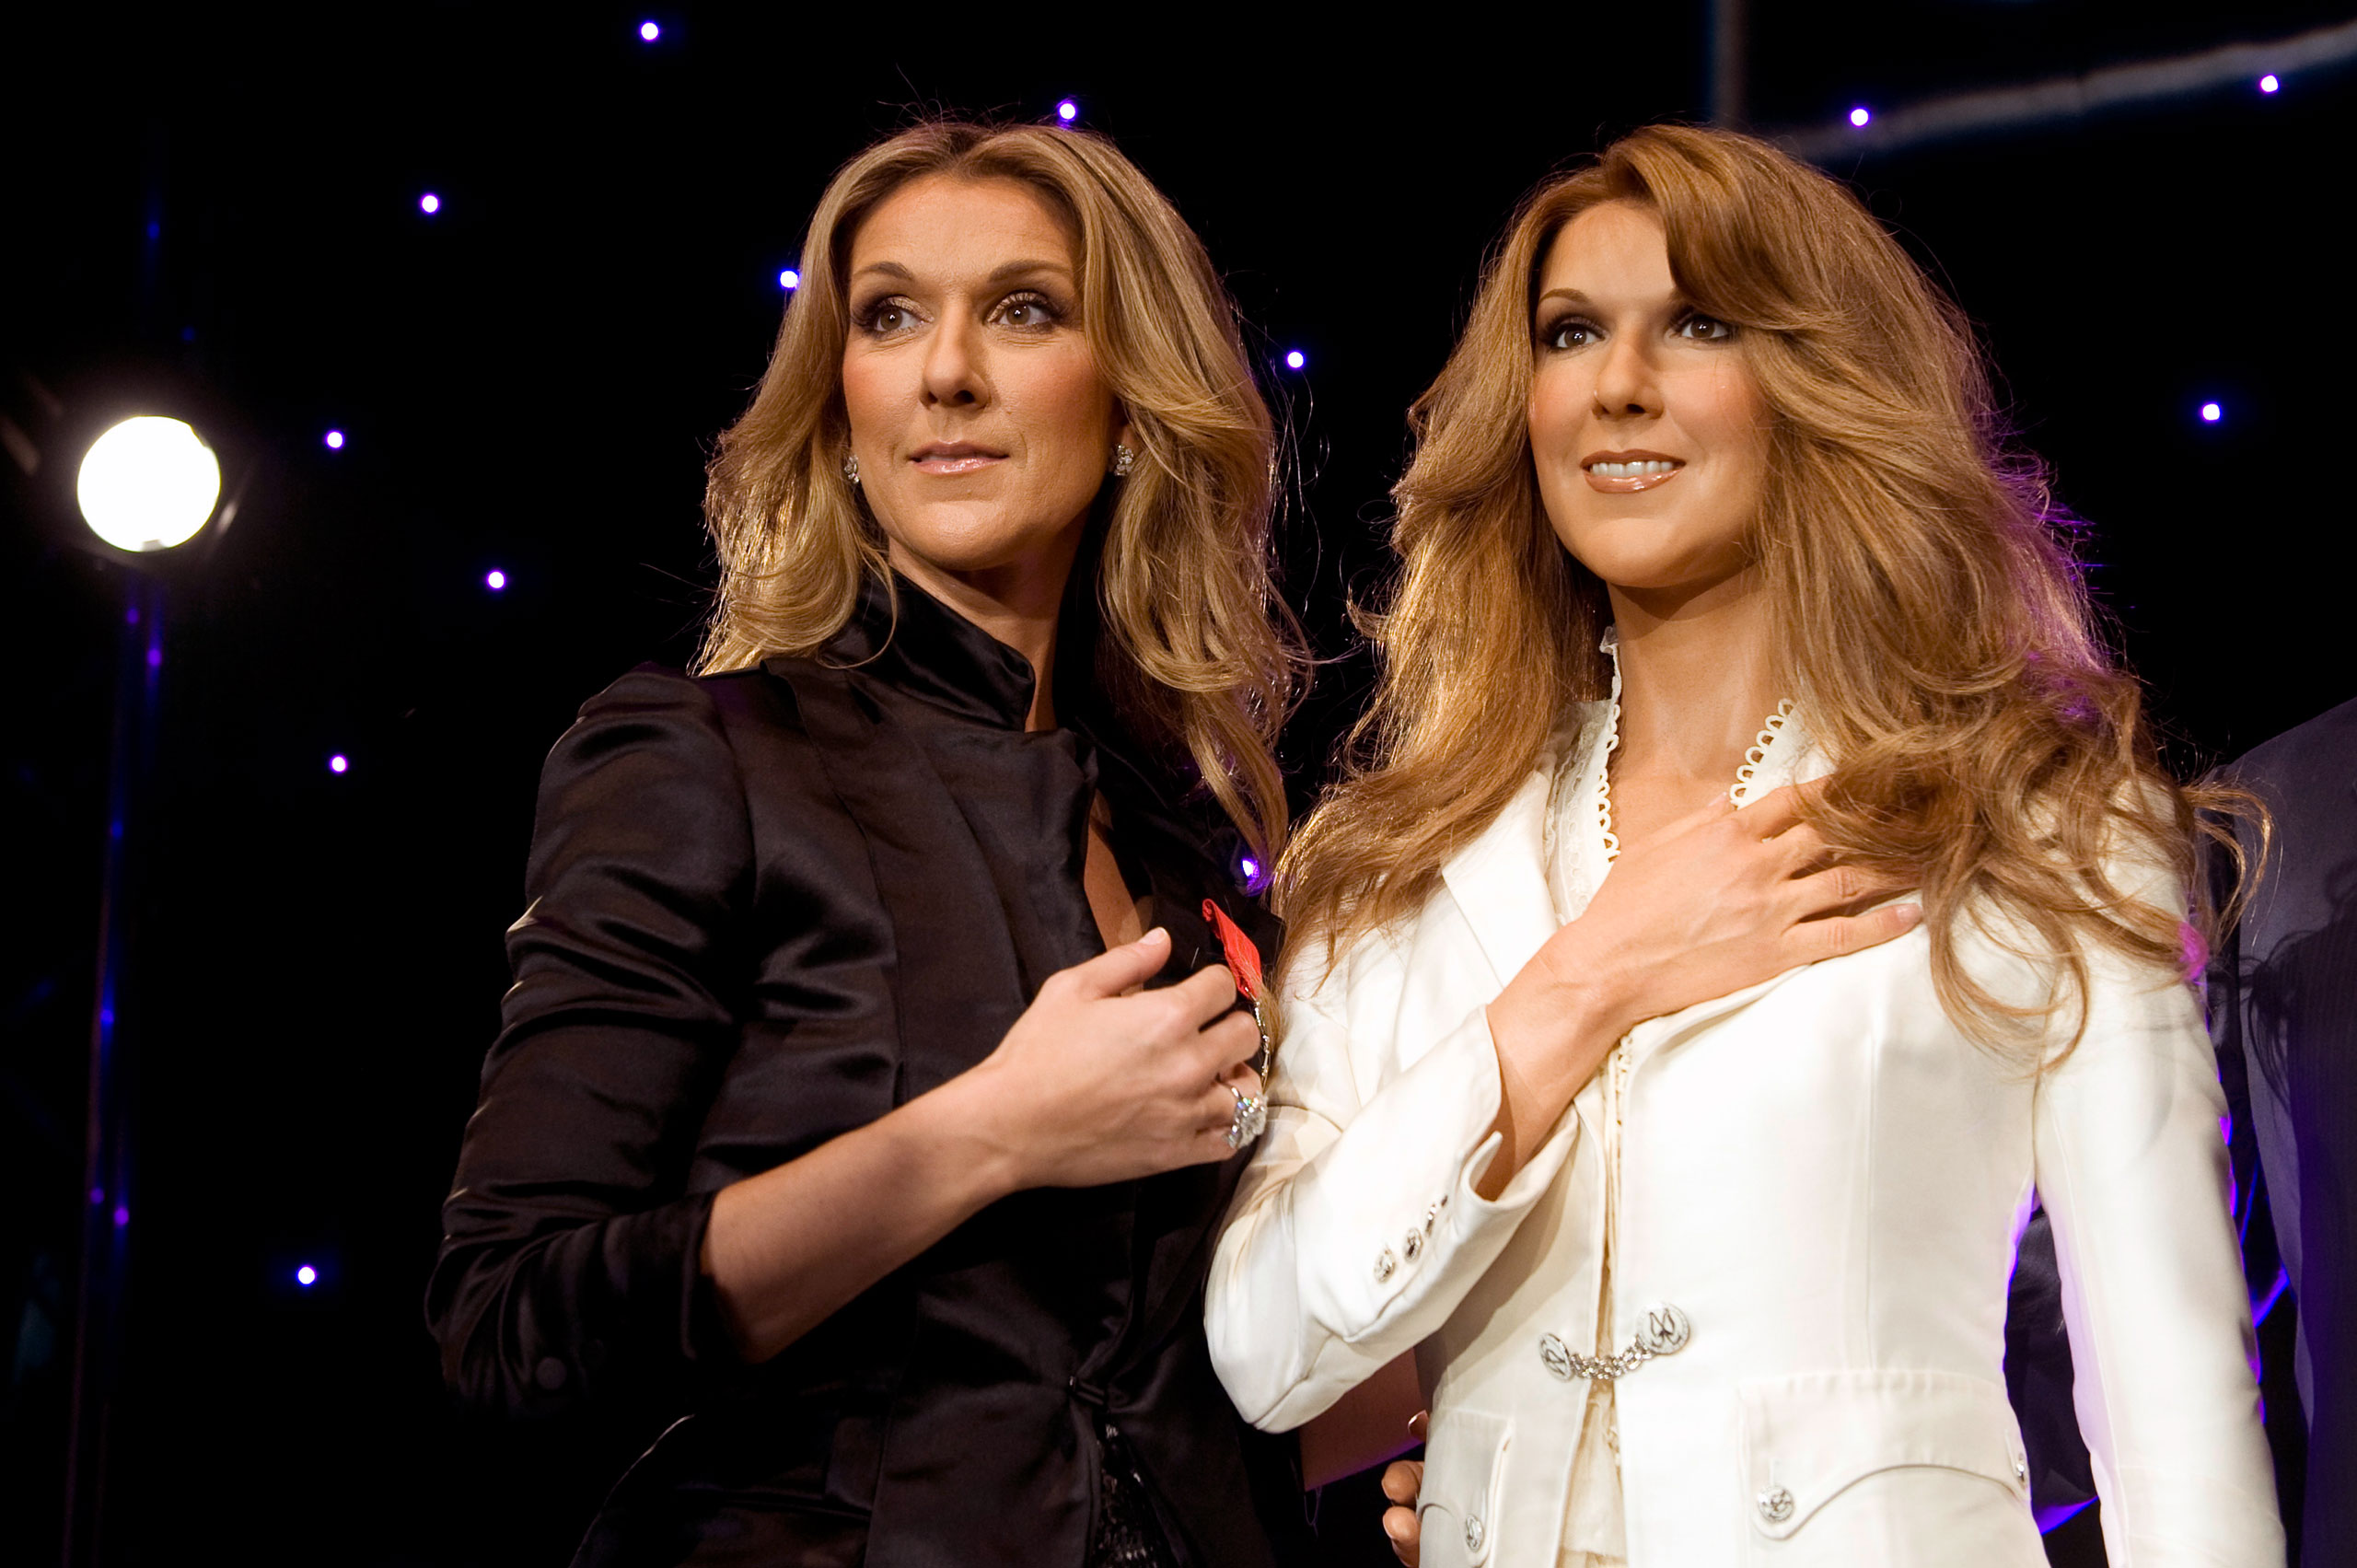 Singer Celine Dion, left, stands next to her figure at the Grevin wax museum in Paris on May 22, 2008.